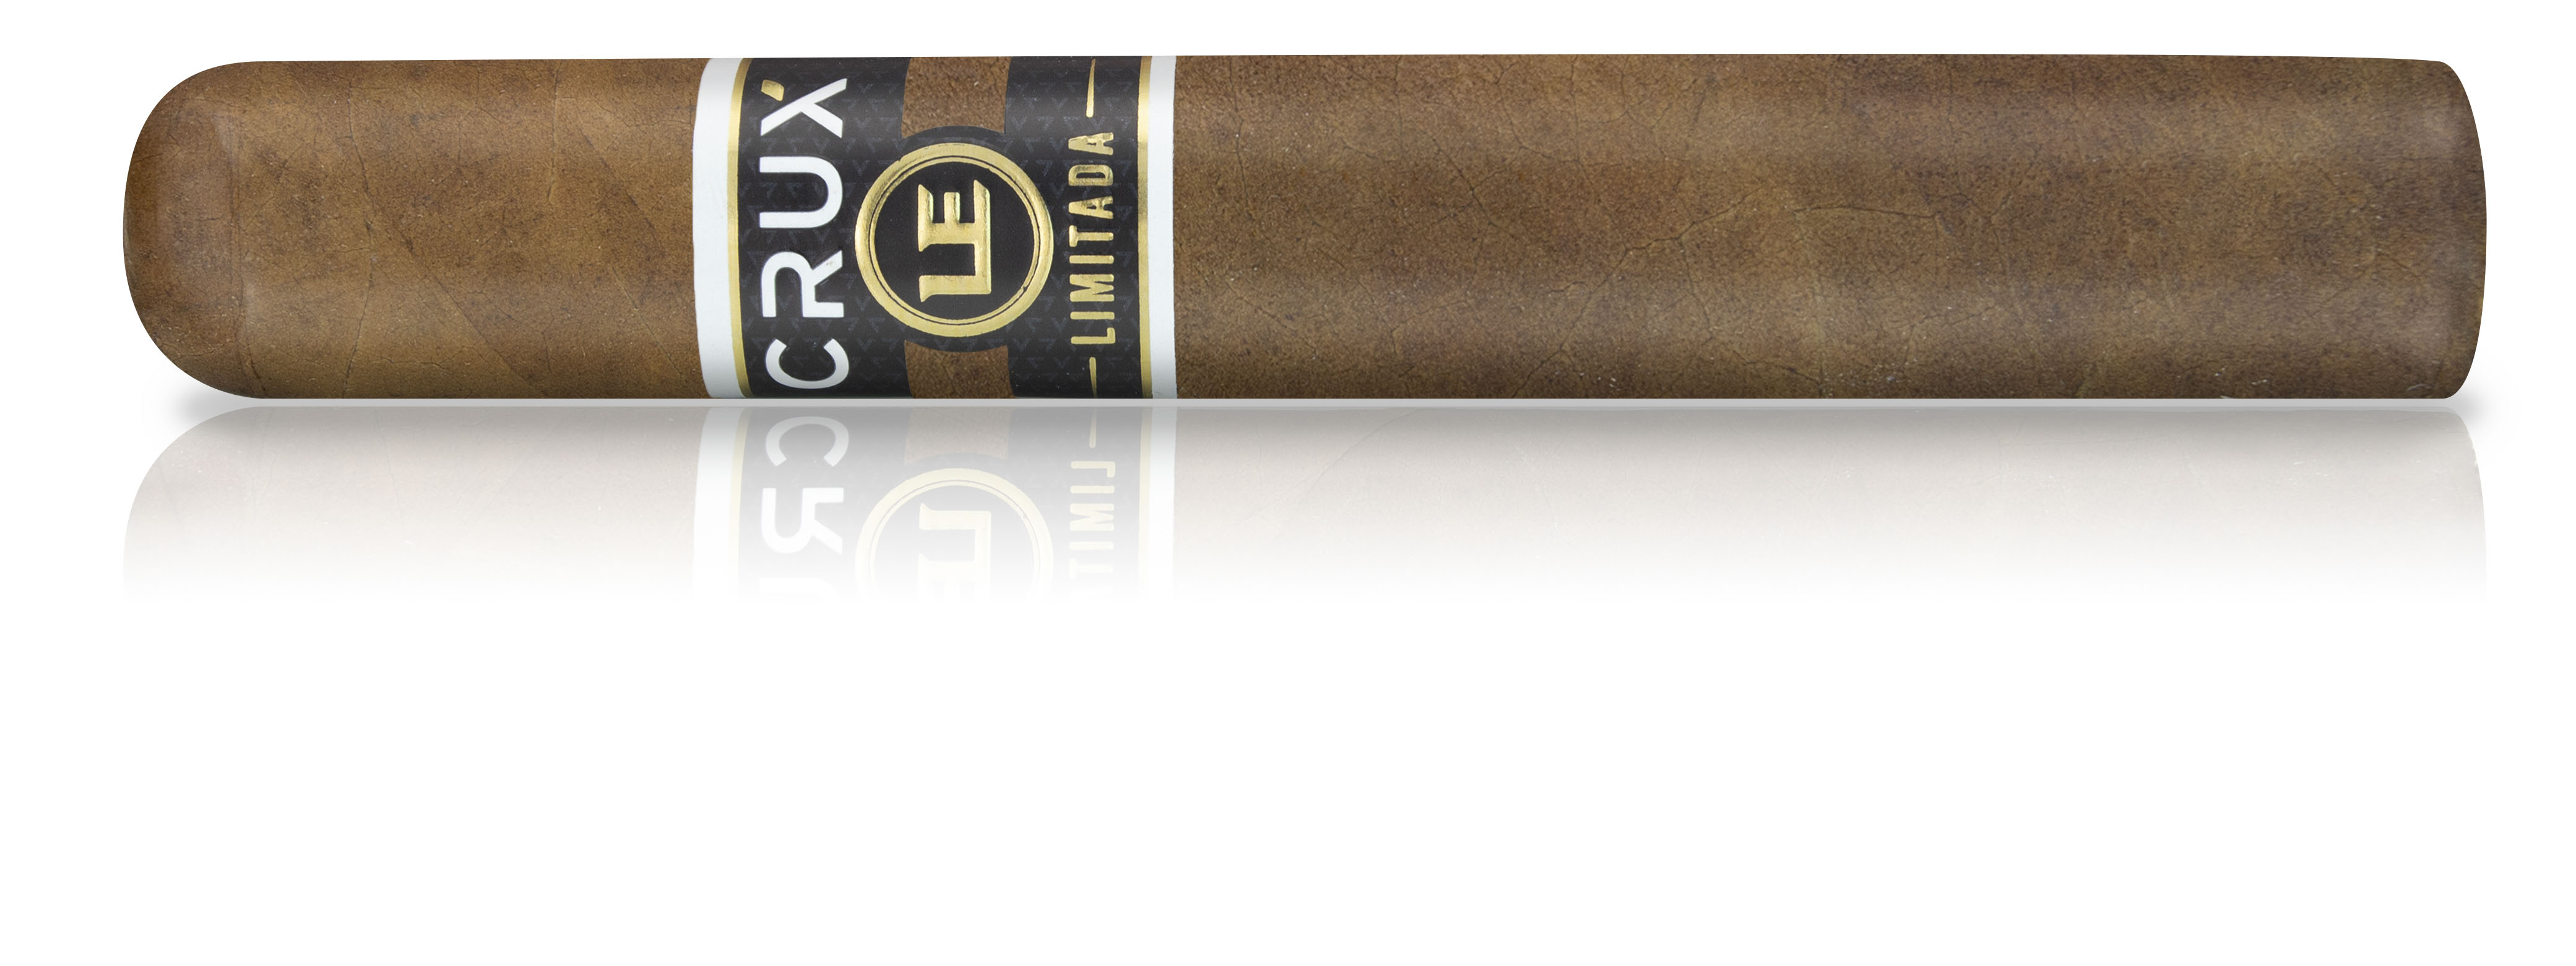 horizontal crux limitada cigar